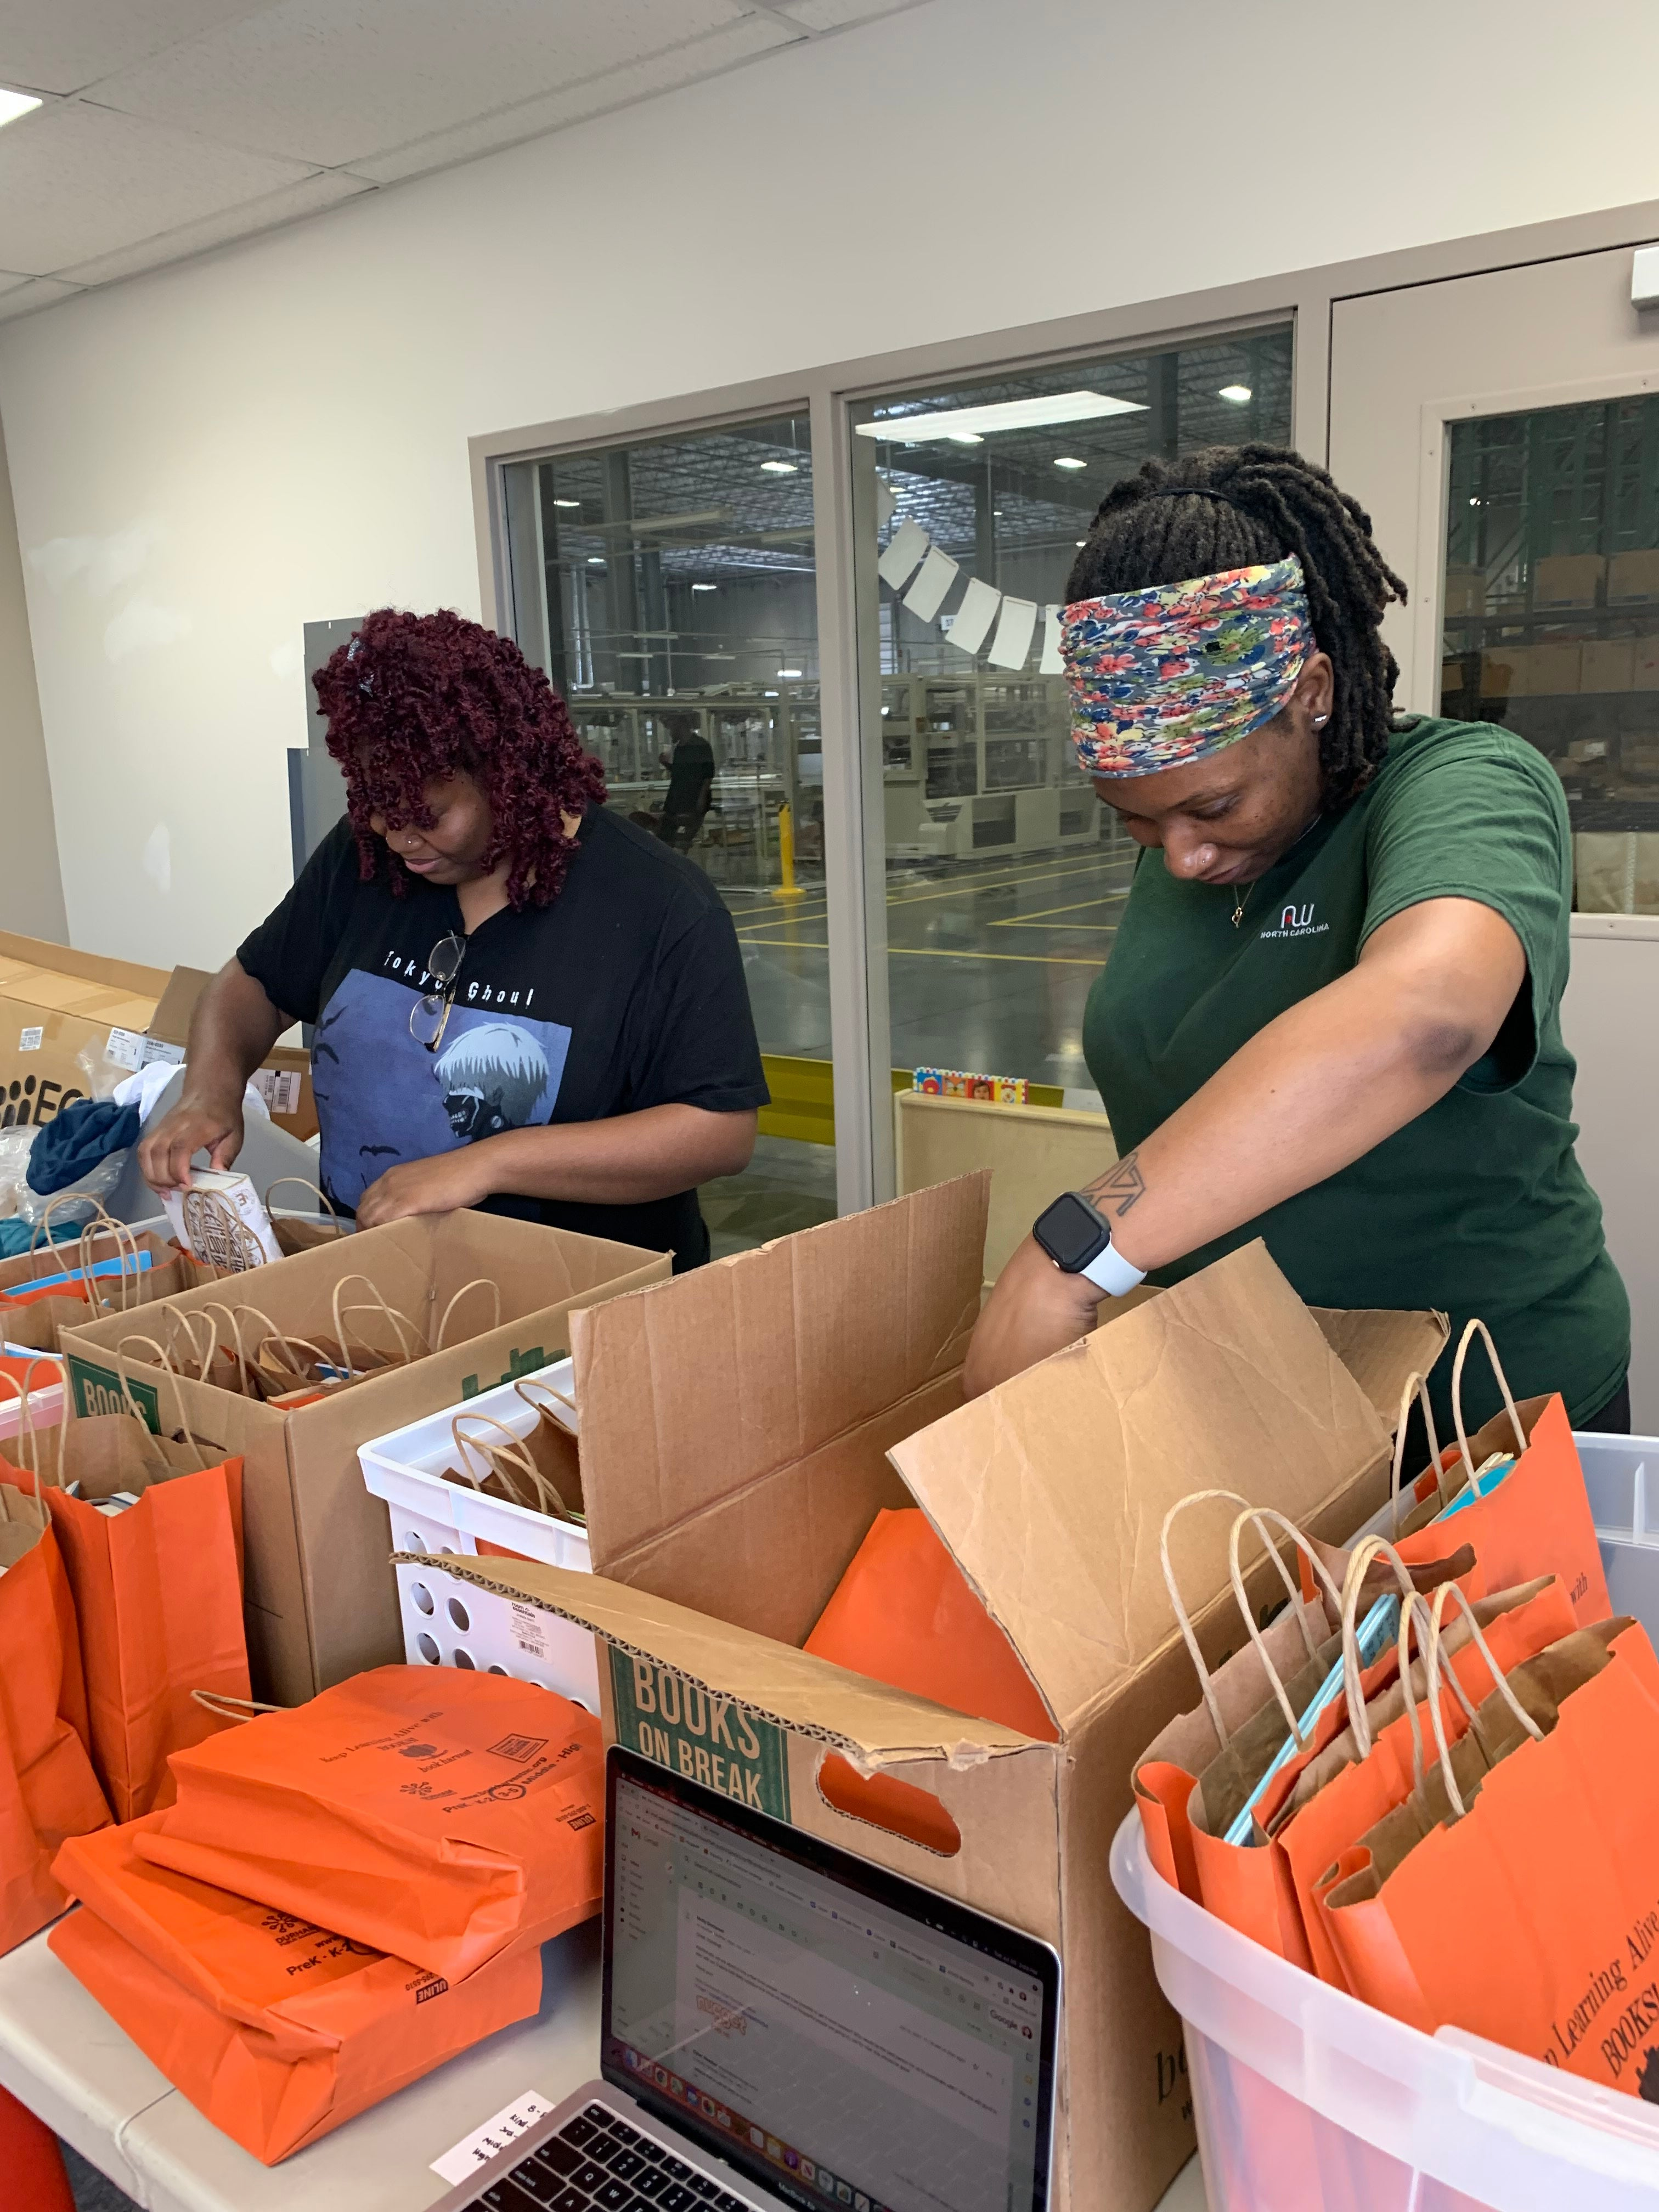 Two Nugget team members sorting through donated books from Book Harvest